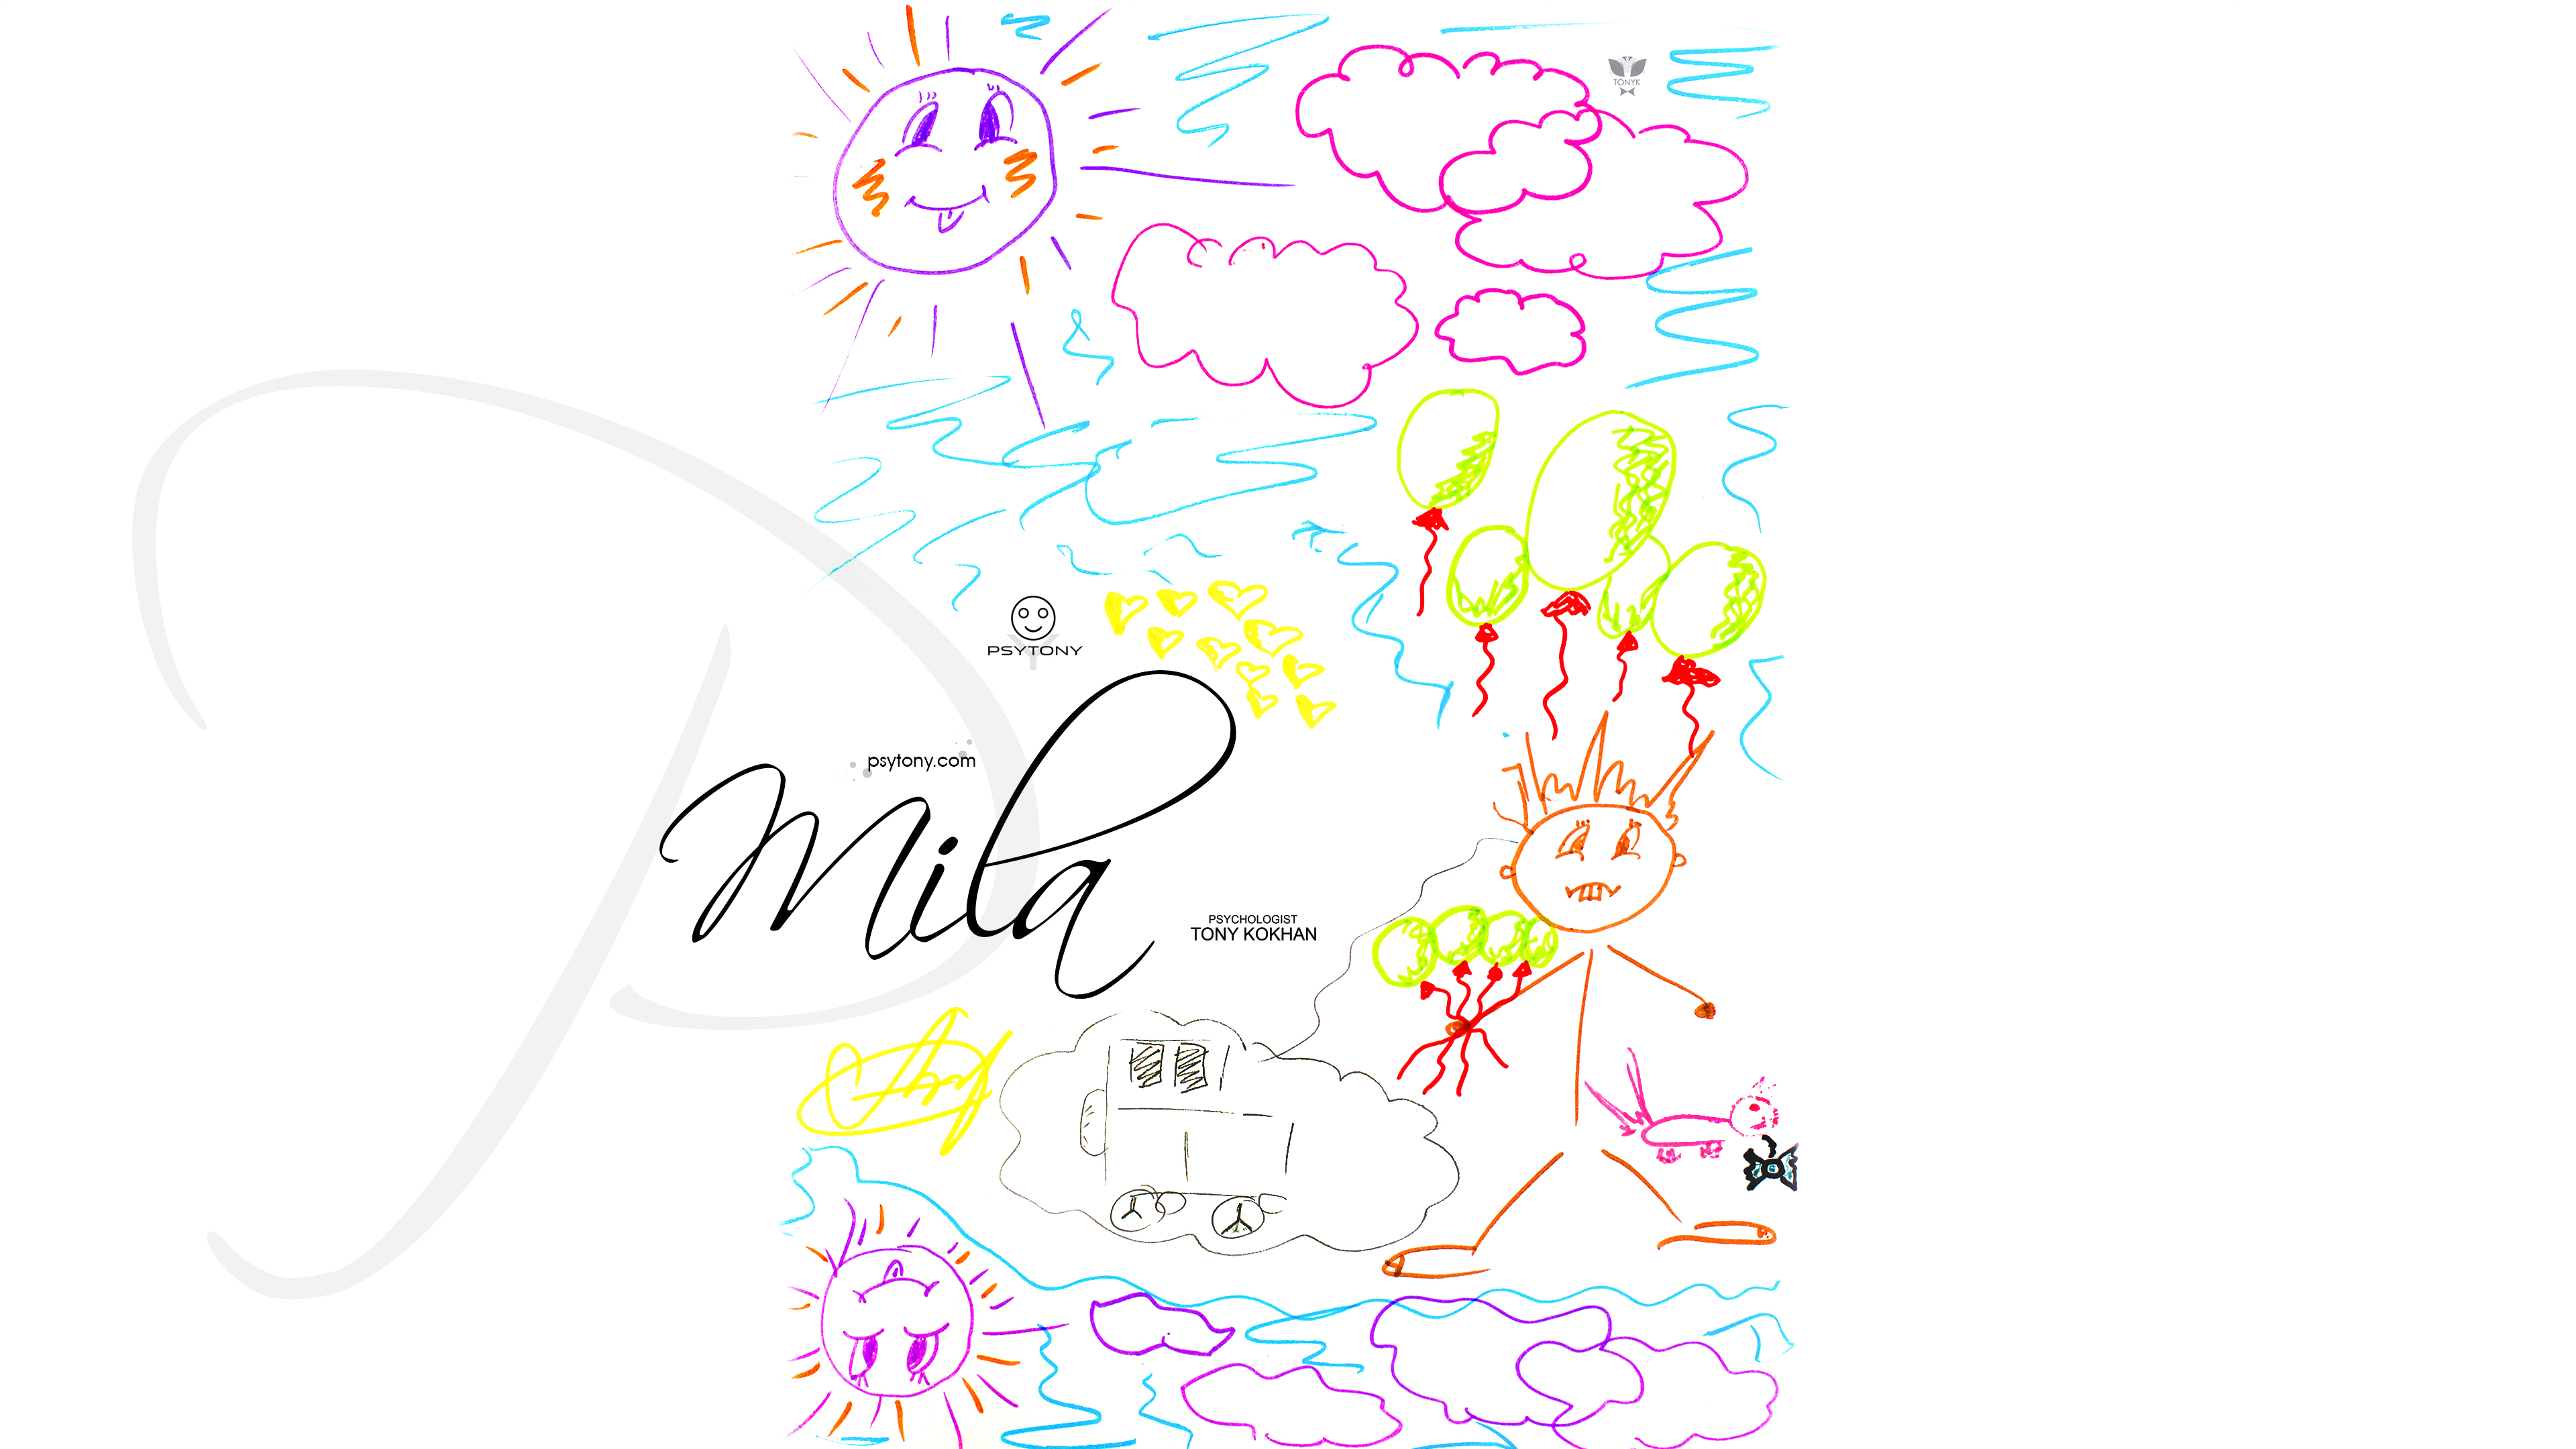 Mila-Soul-Girl-Shock-Man-Little-Cat-Bubbles-Violet-Sun-Sky-Pink-Clouds-Drawing-With-Markers-Picture-2019-Multicolors-4K-Wallpapers-by-Psychologist-Tony-Kokhan-www.psytony.com-image